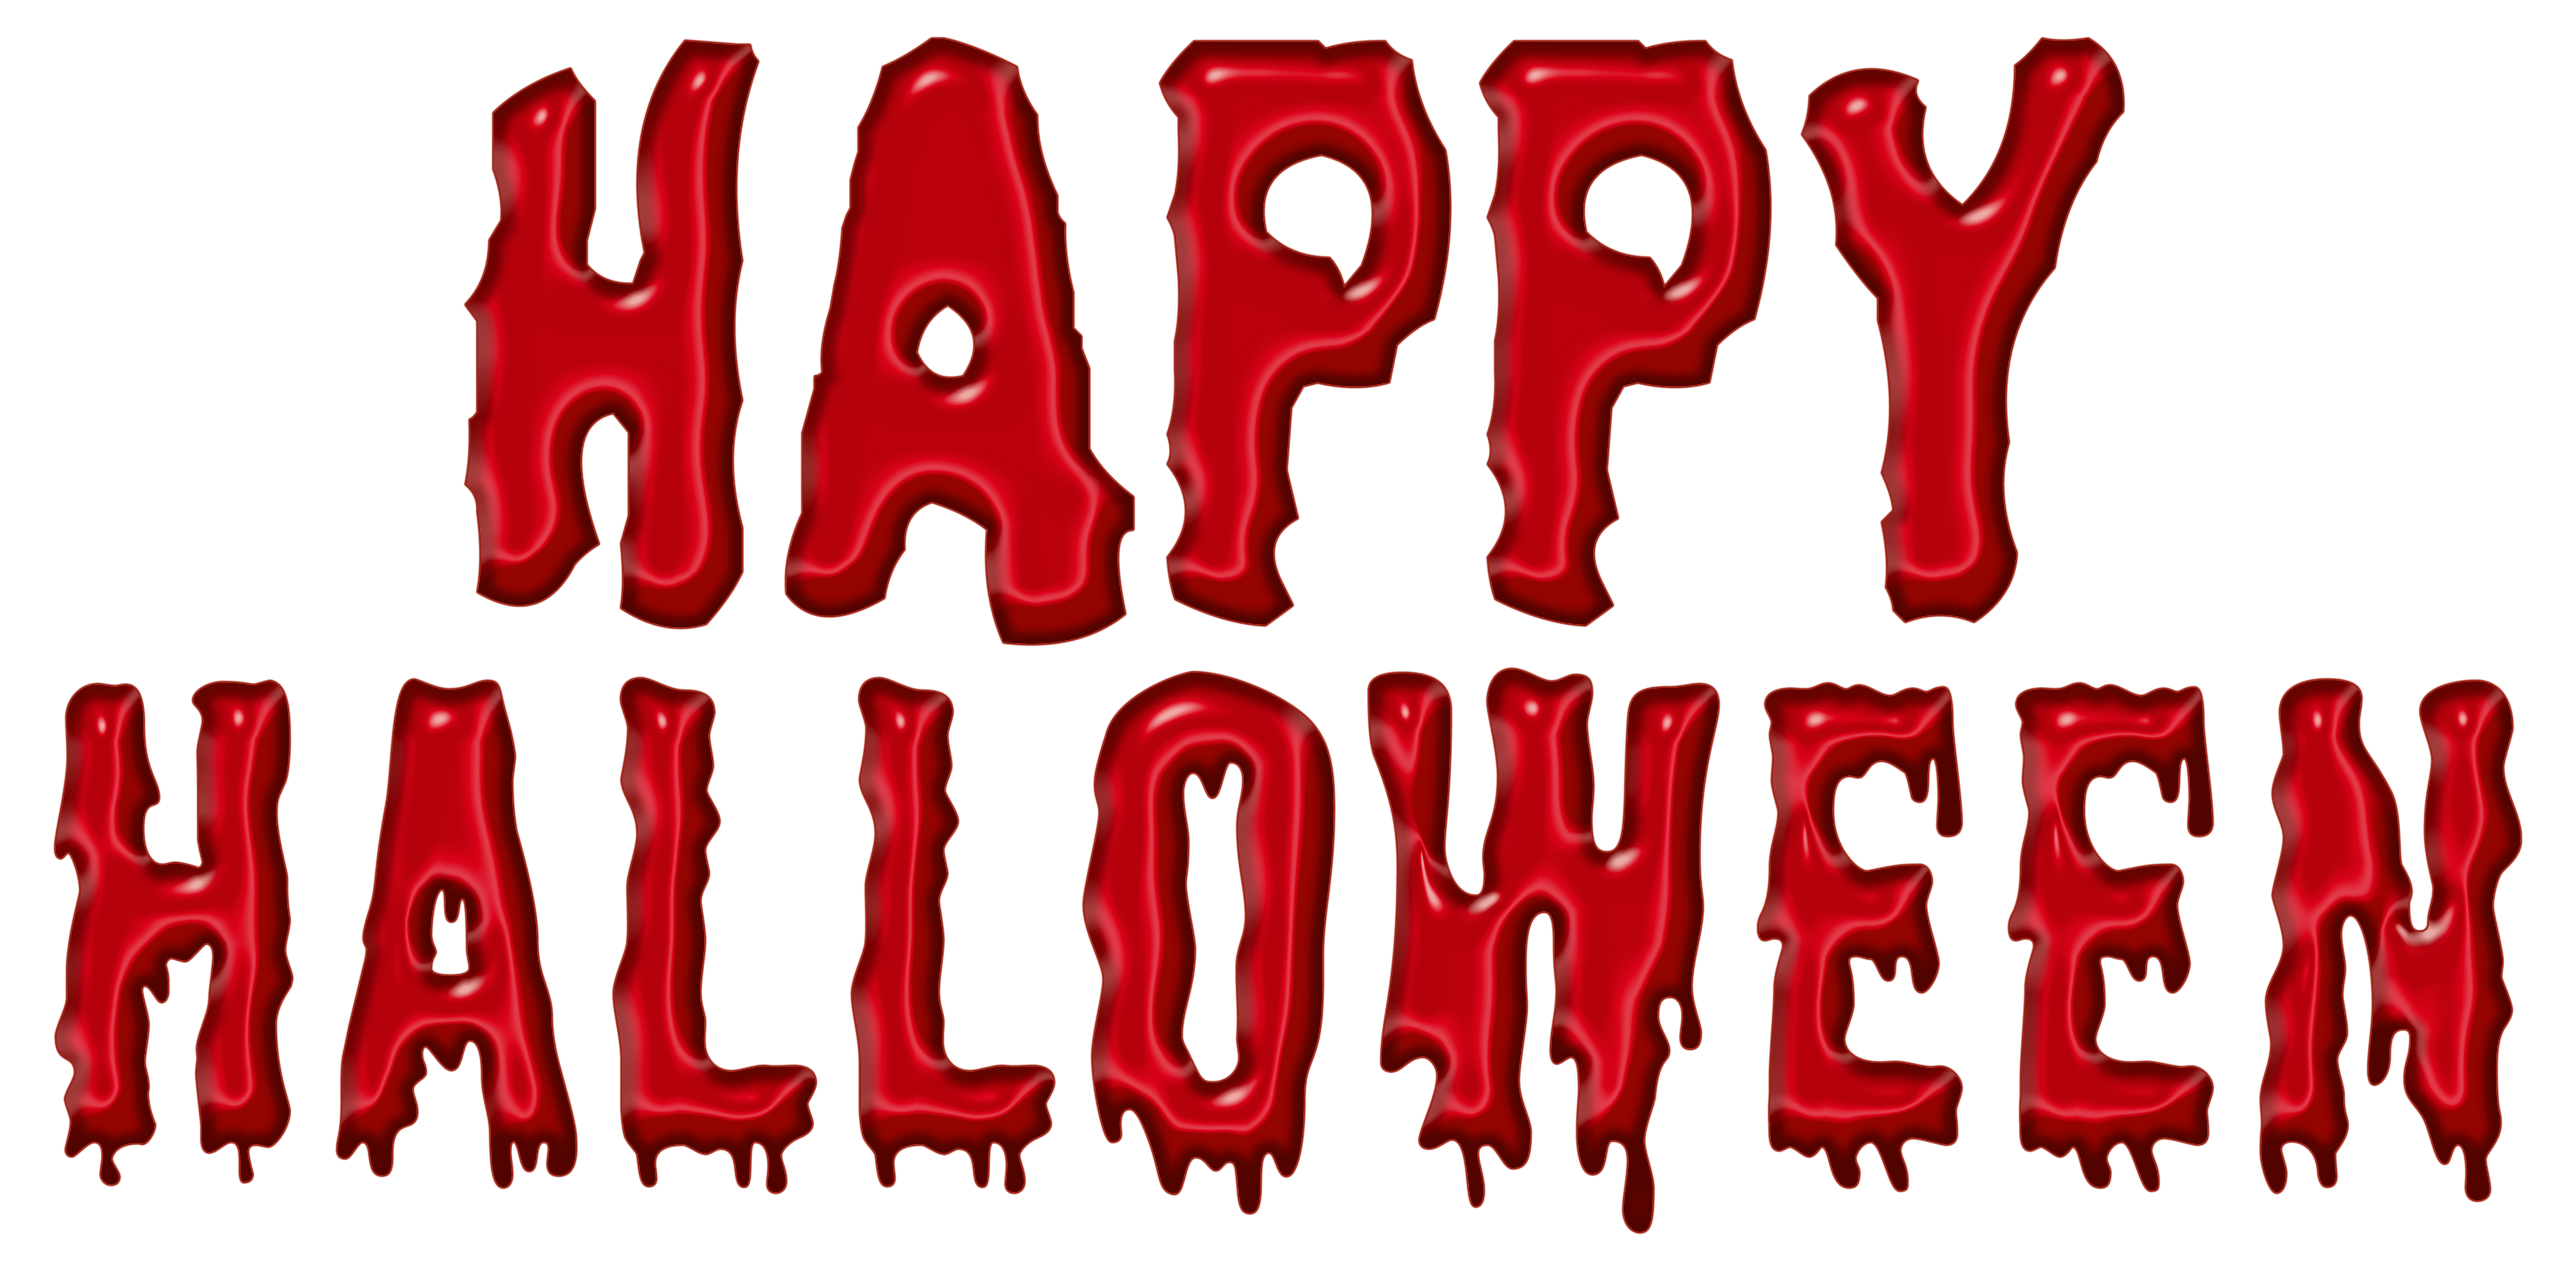 Clipart halloween blood. Bloody happy png picture